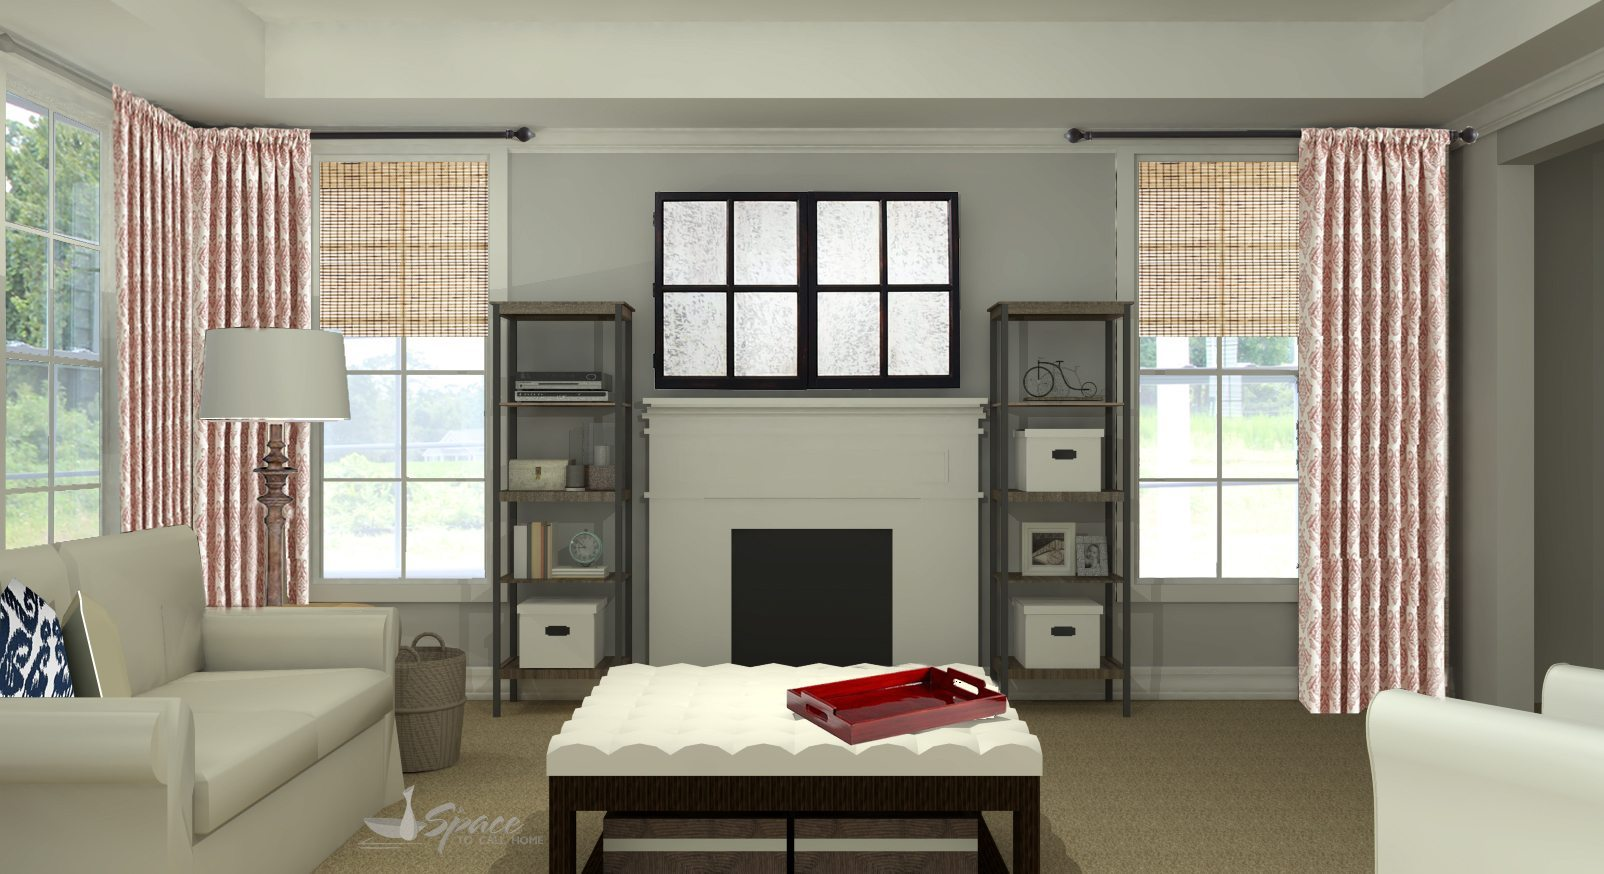 Virtual room design create your dream room a space to Dream room design